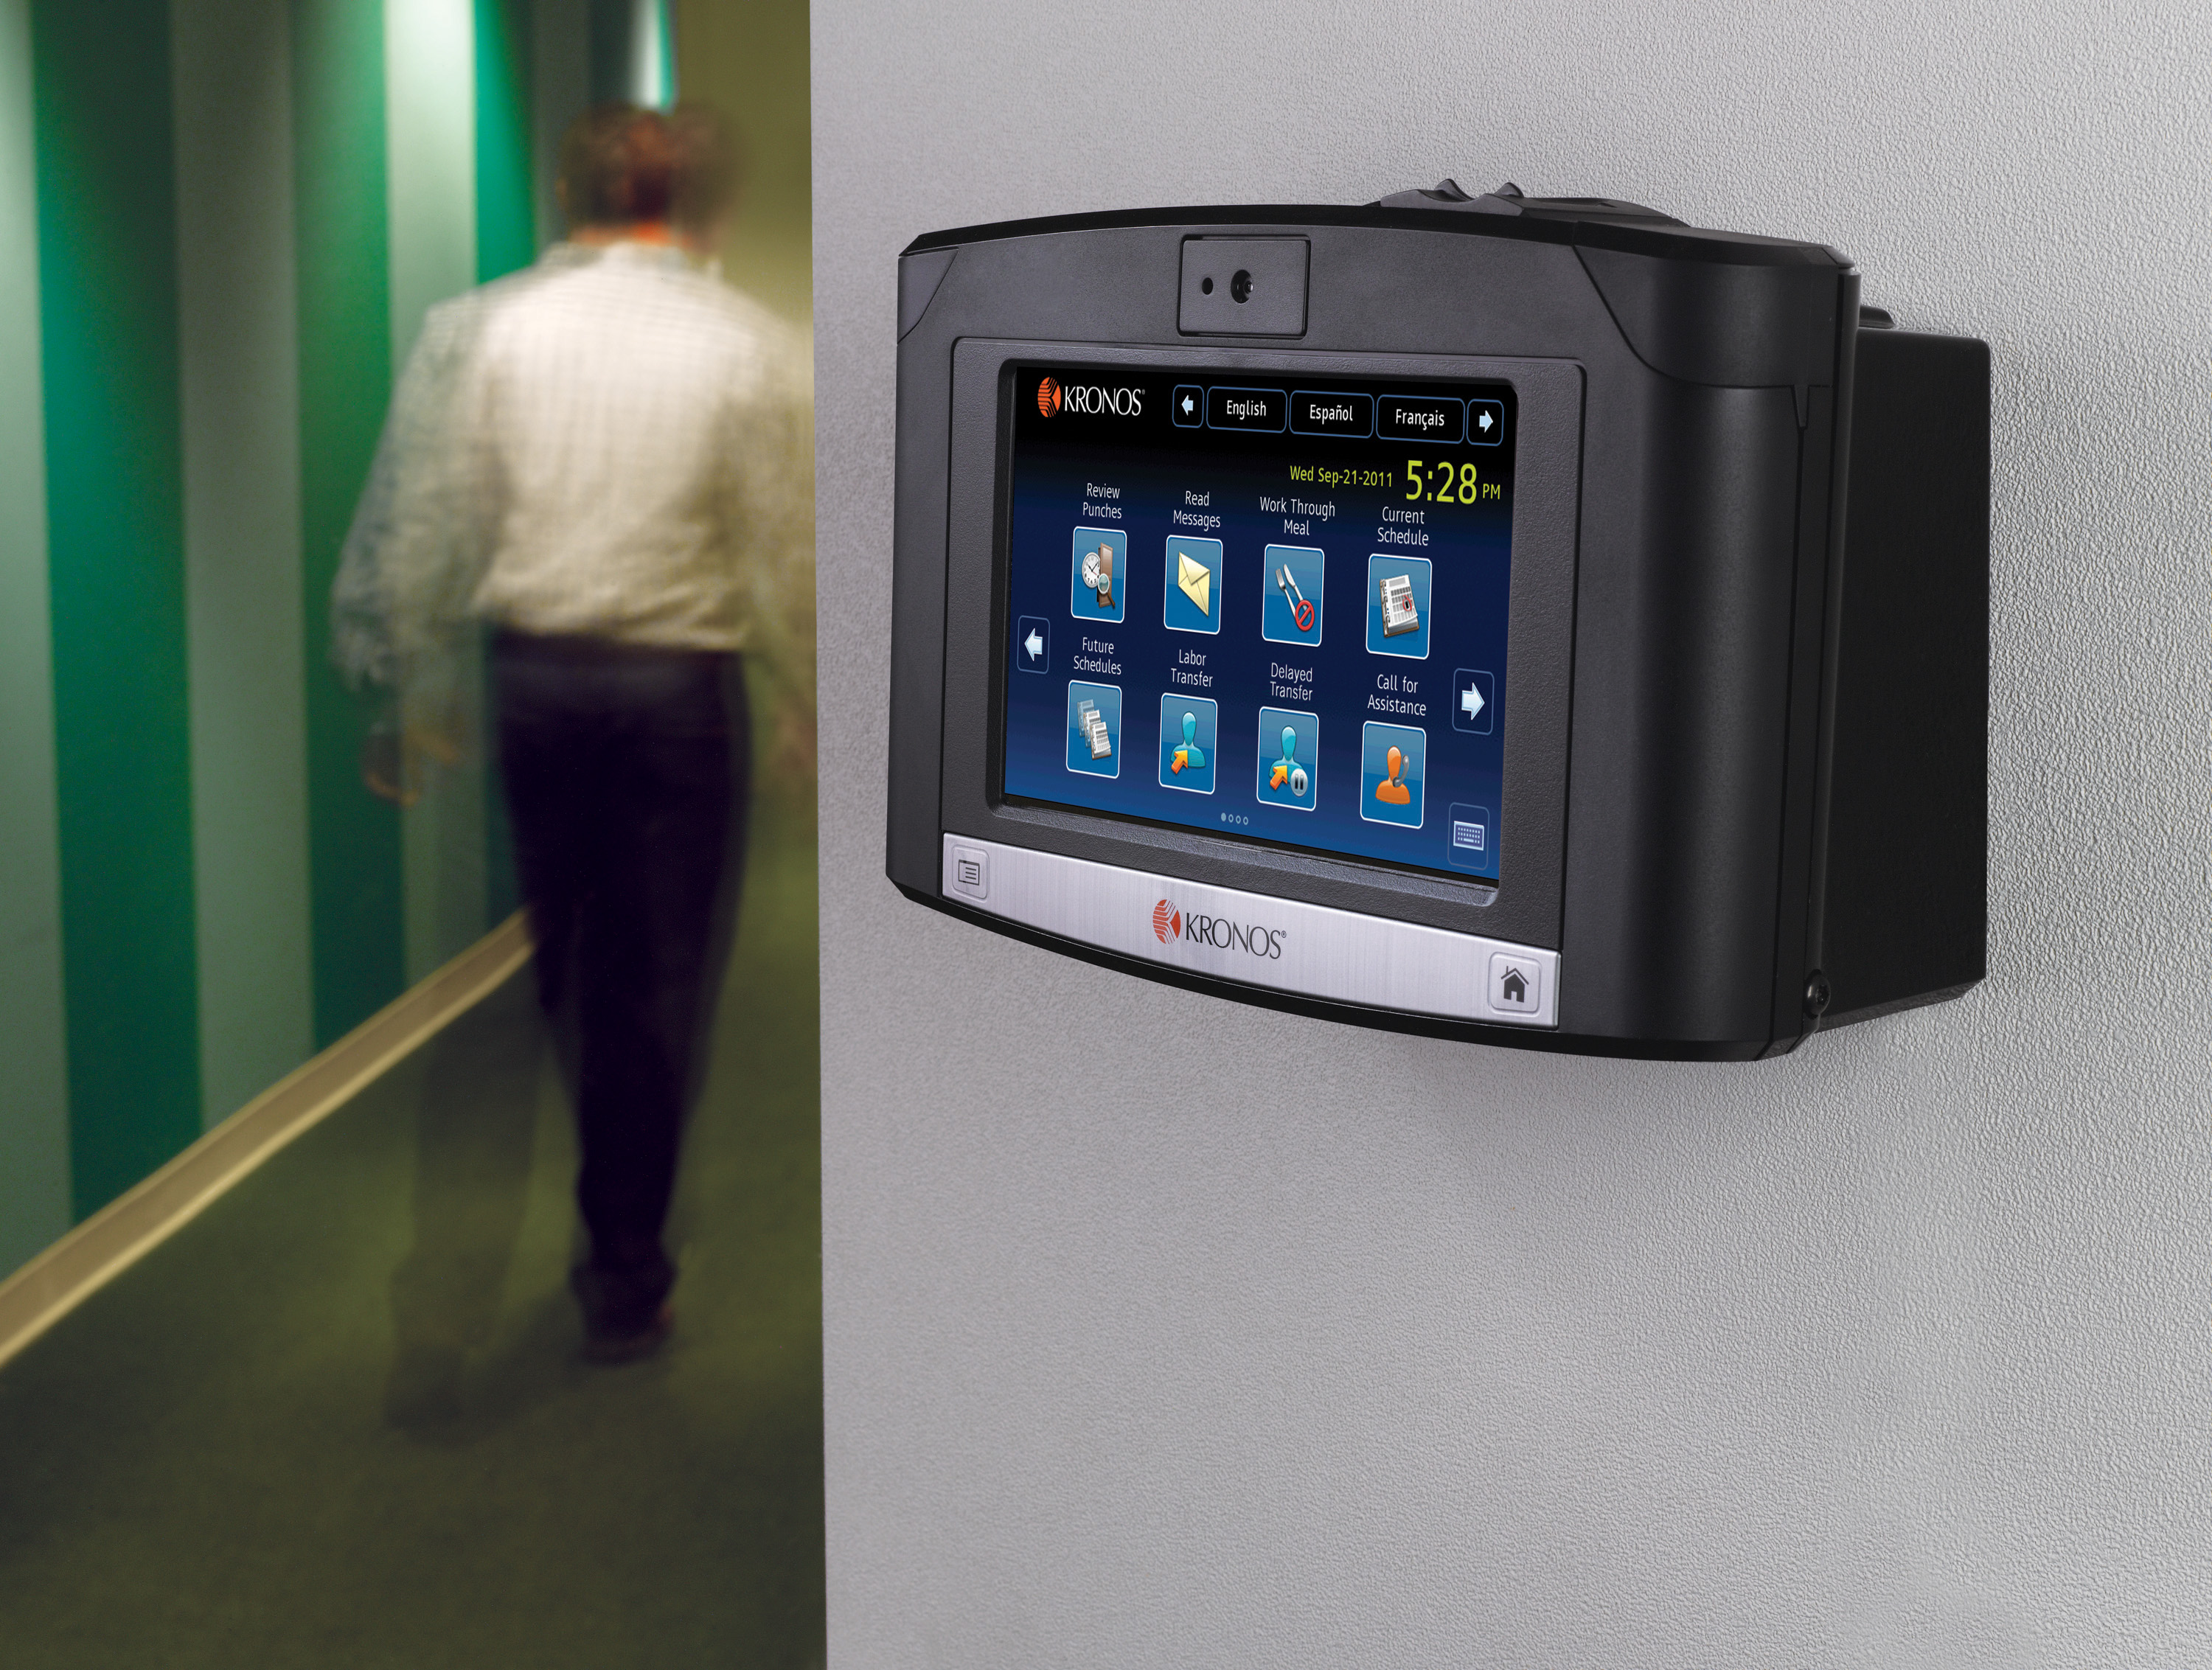 Global Demand For Kronos Intouch Time Clock Accelerates